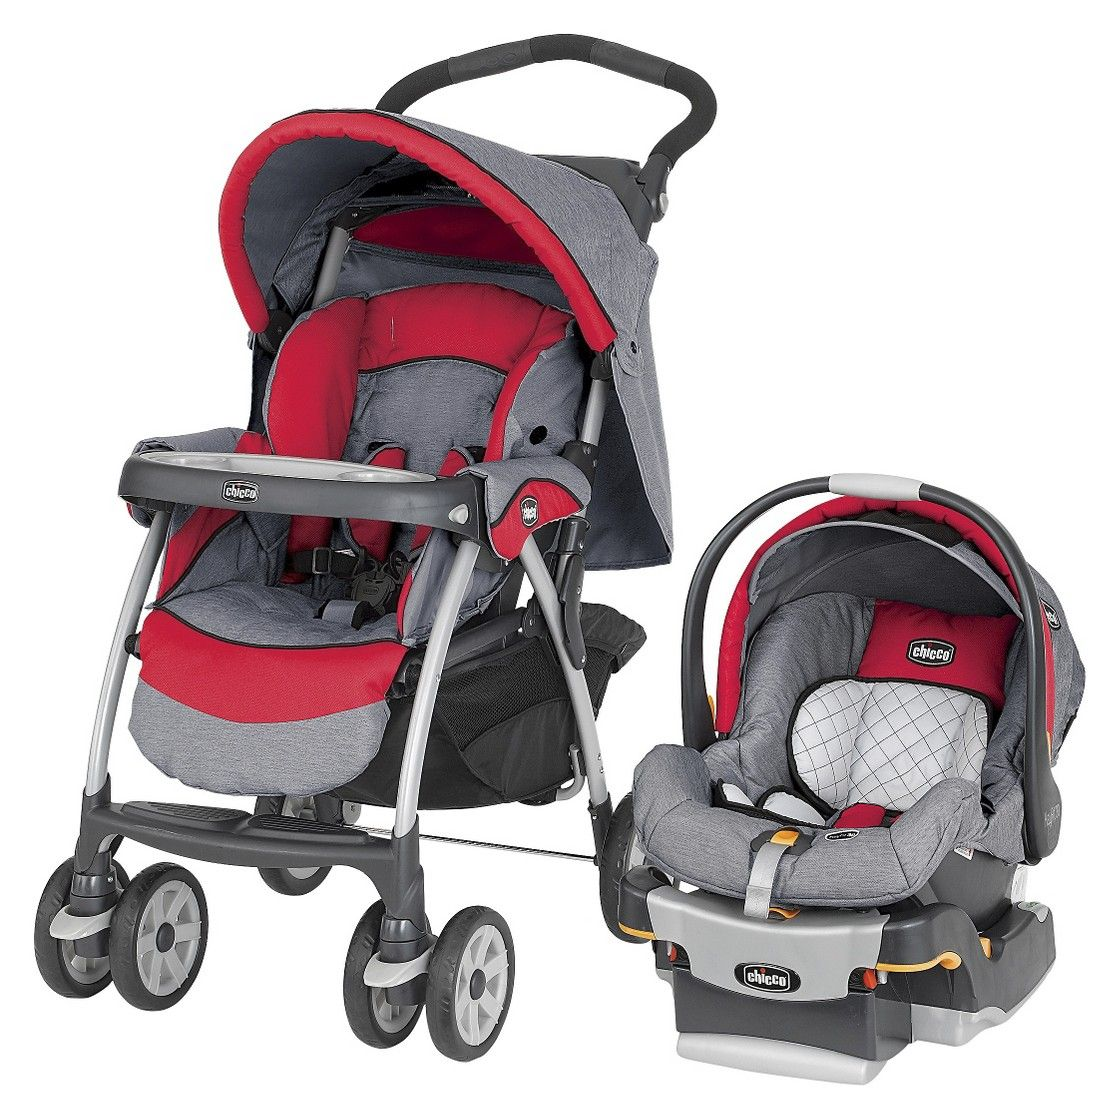 Chicco cortina keyfit 30 travel system travel system